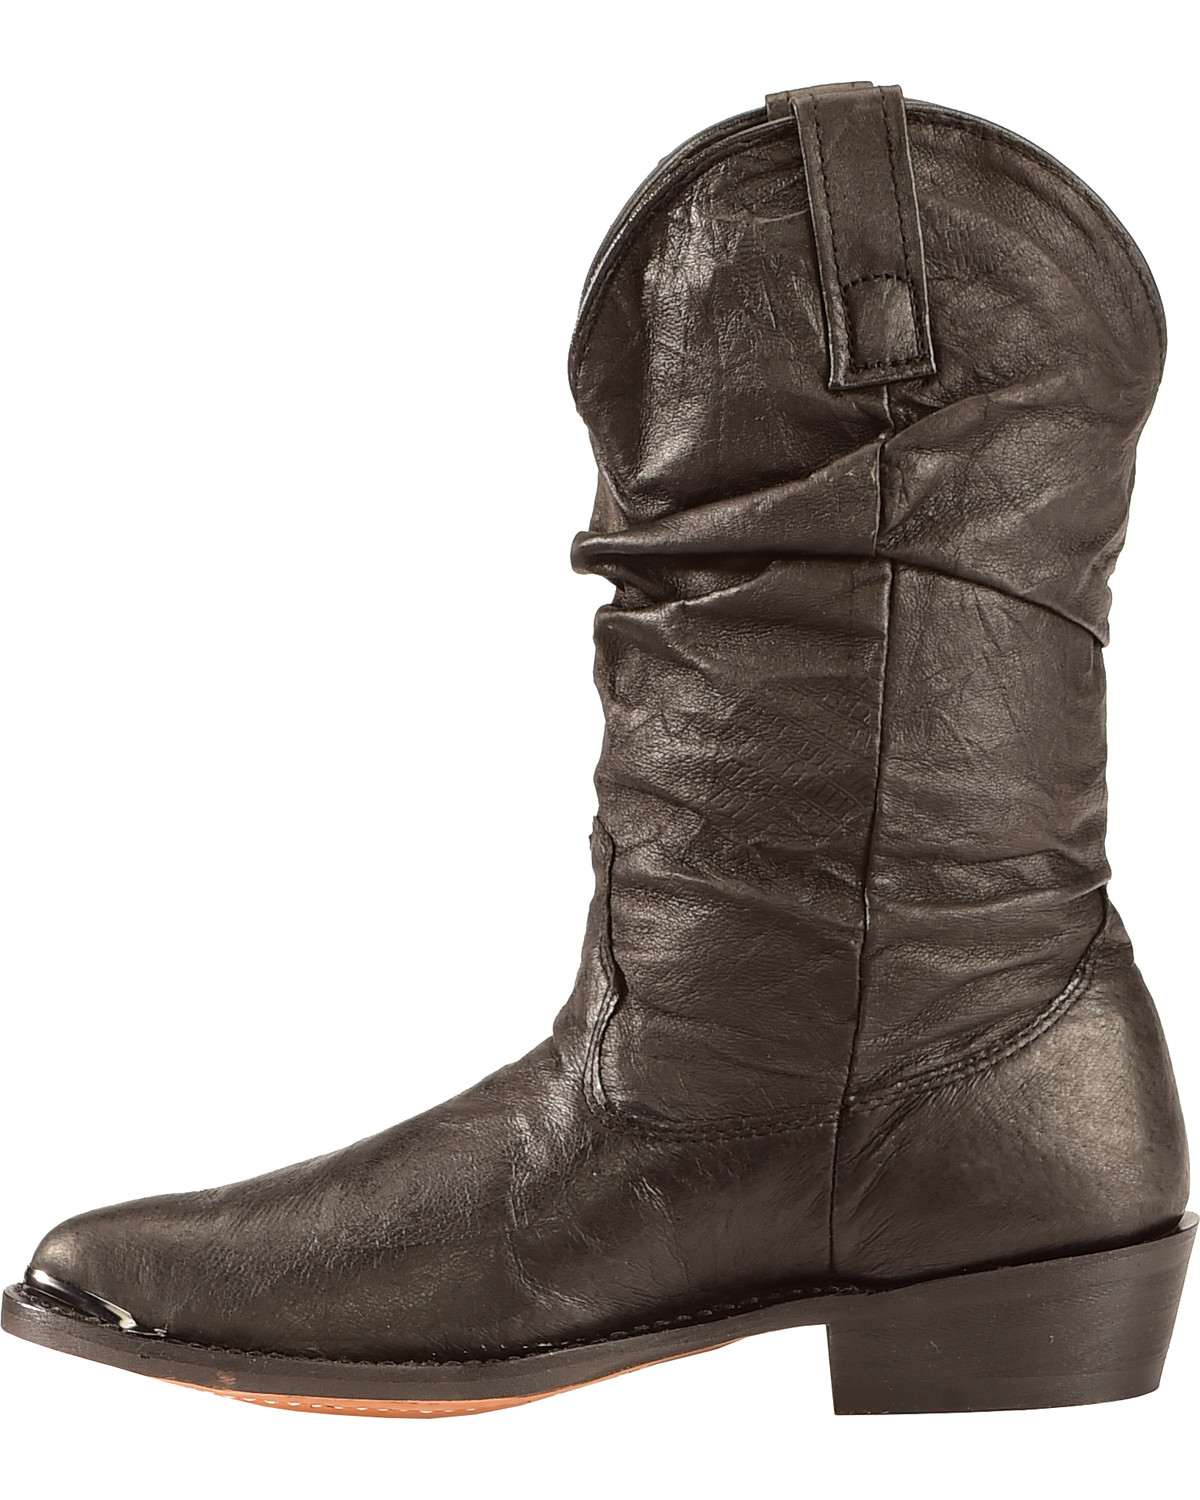 Dingo Slouch Cowboy Boots - Round Toe - Country Outfitter